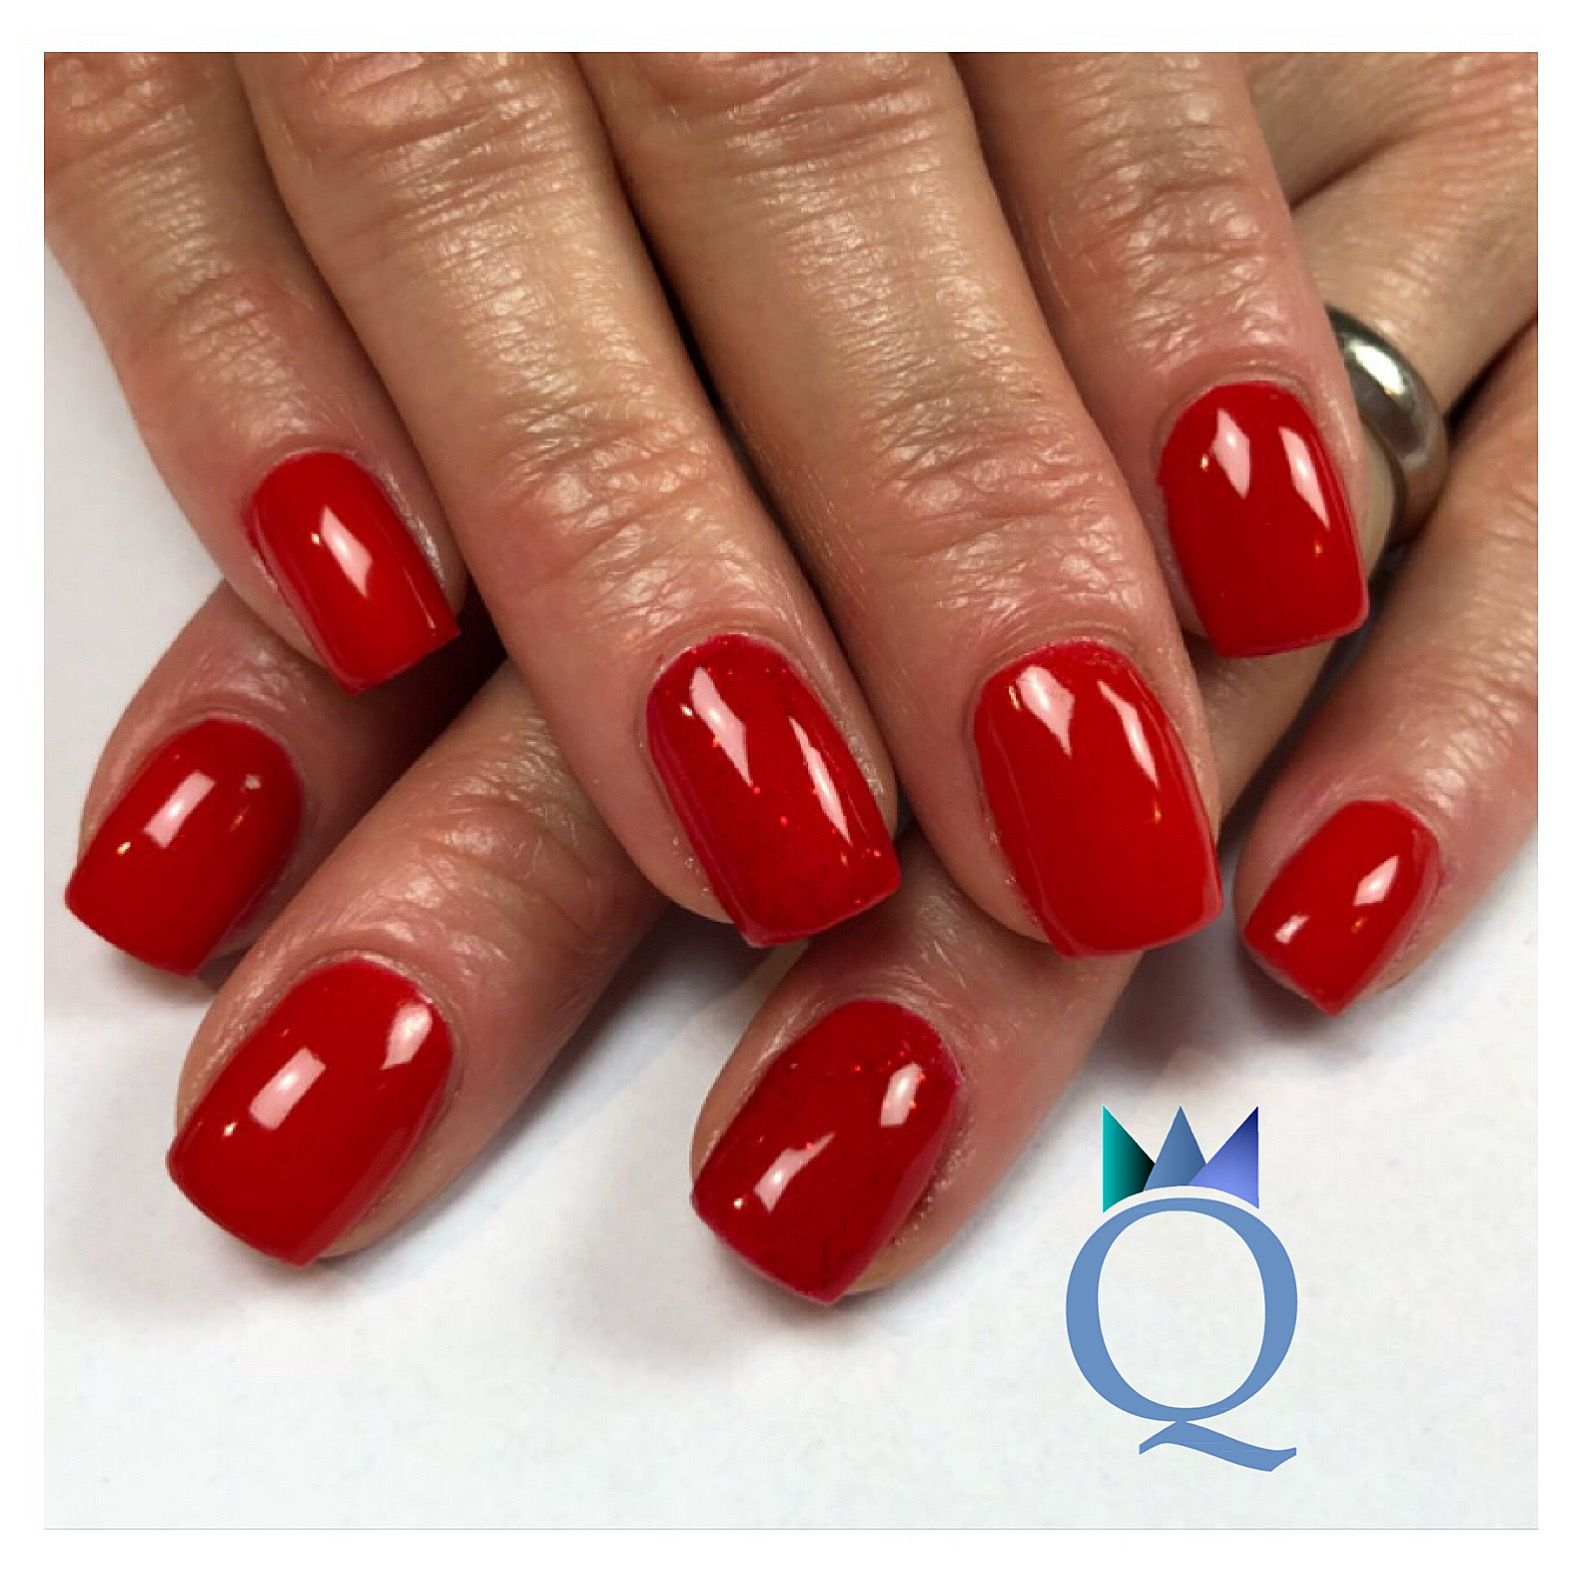 Fesselnde Nageldesign Rot Dekoration Von #shortnails #gelnails #nails #red #kurzenägel #gelnägel #nägel